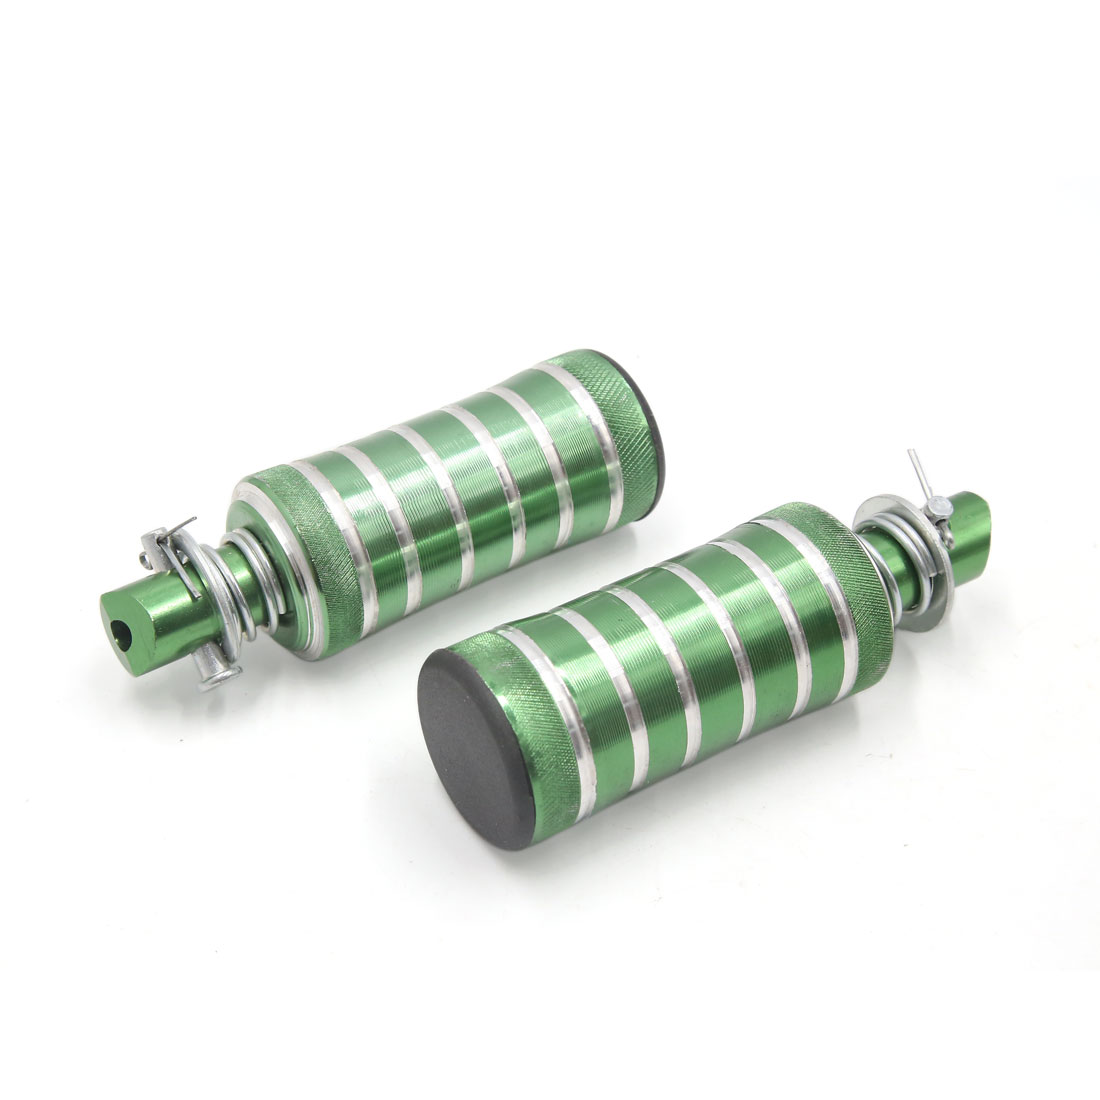 2 Pcs Green Silver Tone Cylinder Shaped Motorcycle Rear Foot Rests Pegs Pedals